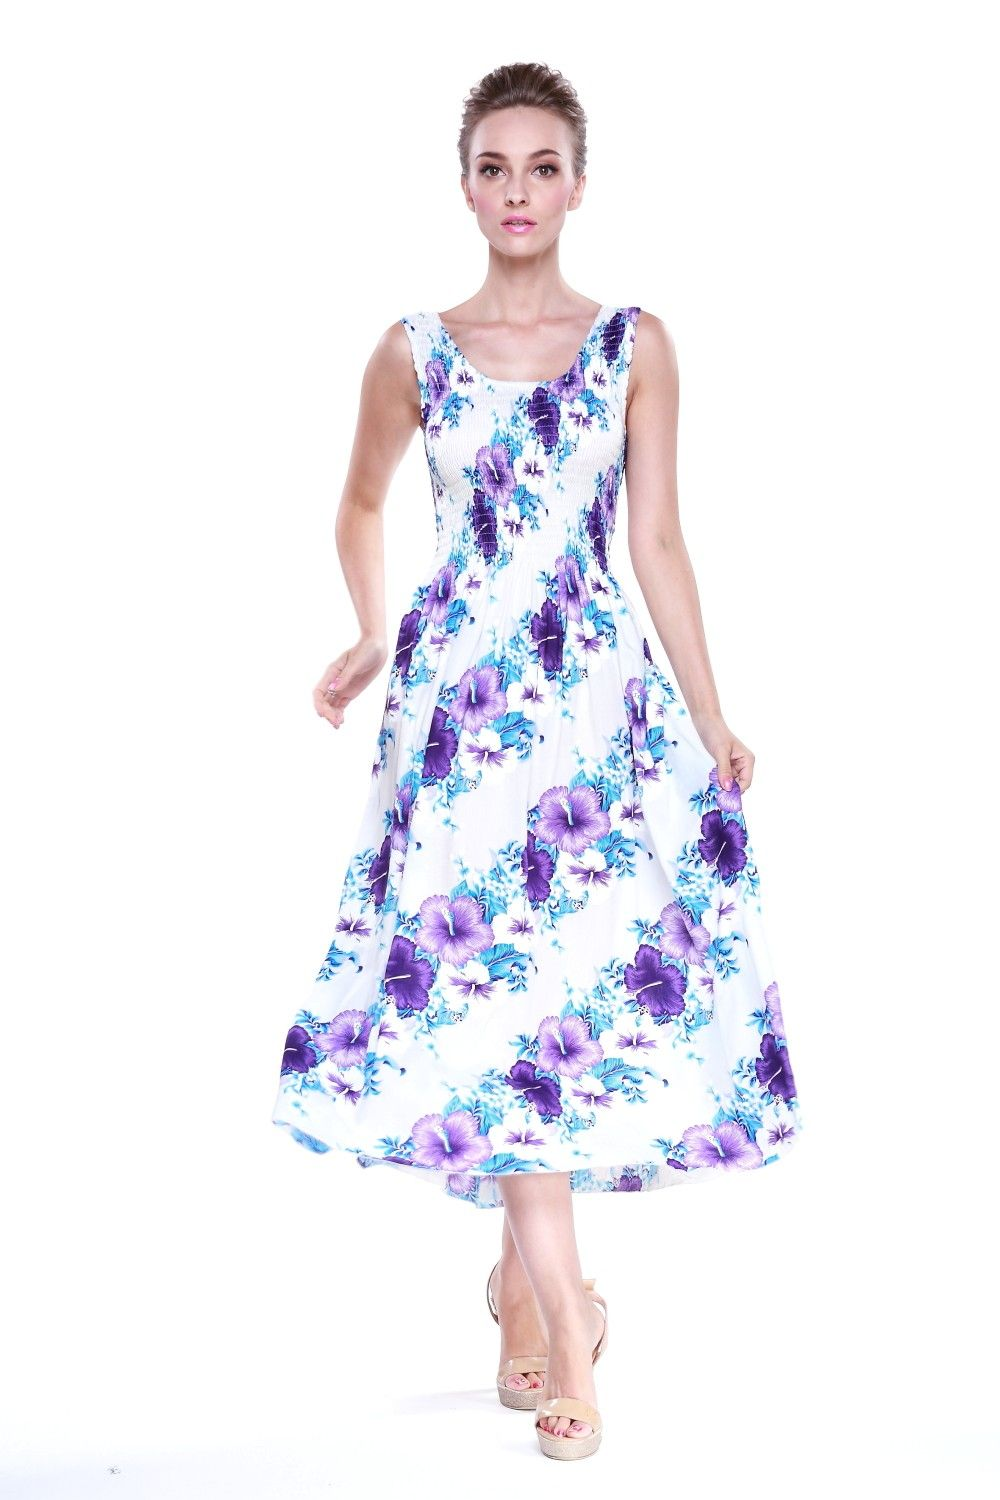 Maxi tank elastic dress in white with purple panel floral